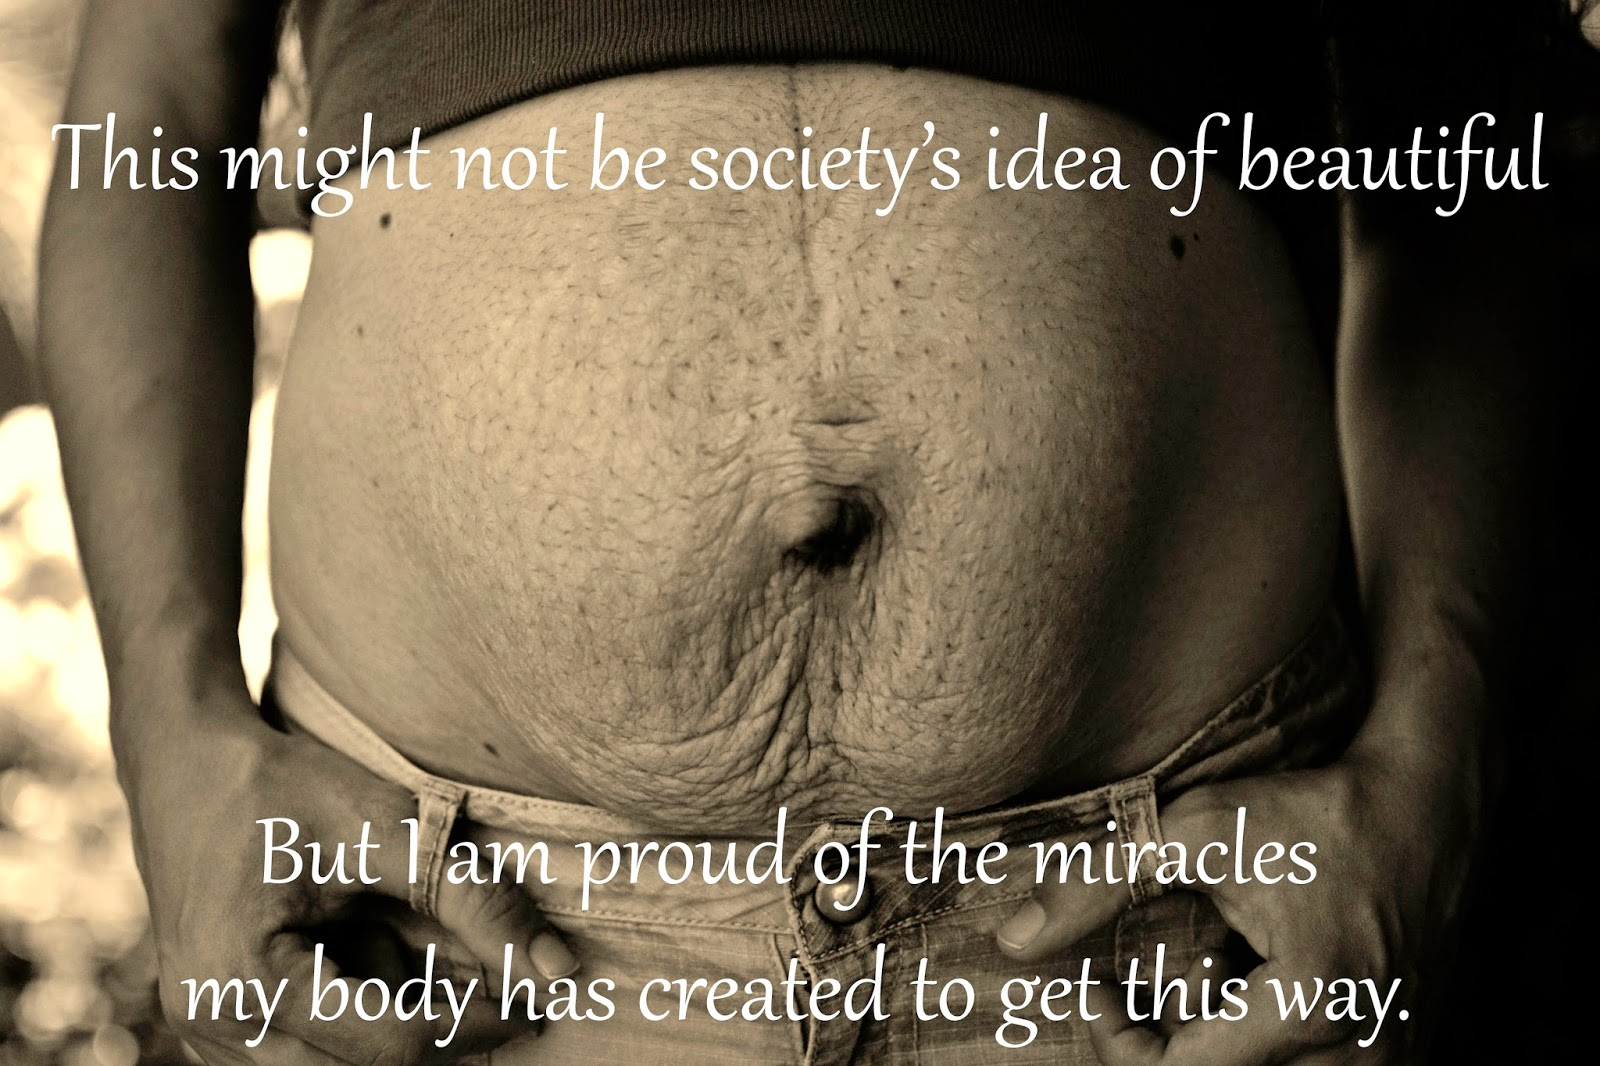 This might not be society's idea of beautiful, but I'm proud of the miracles my body has created.